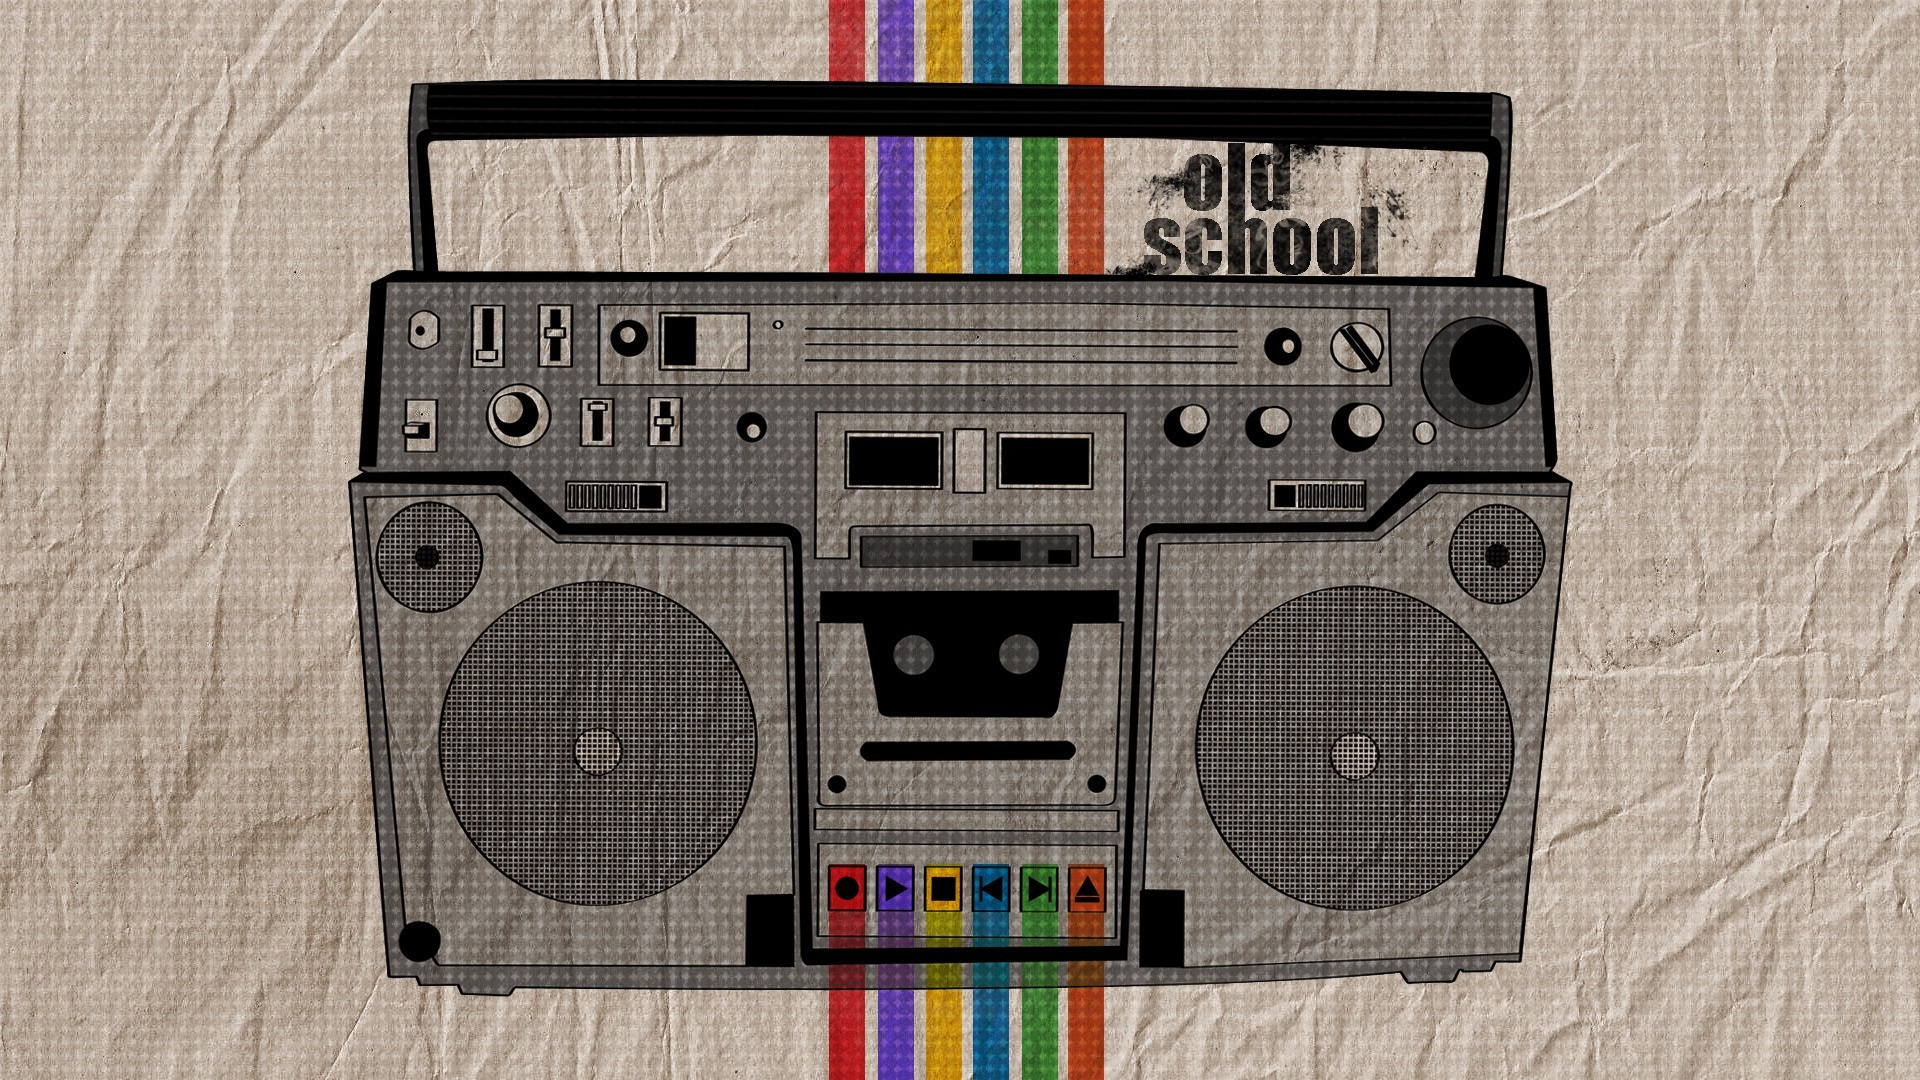 Res: 1920x1080, Free Cute Boombox Images on your Android